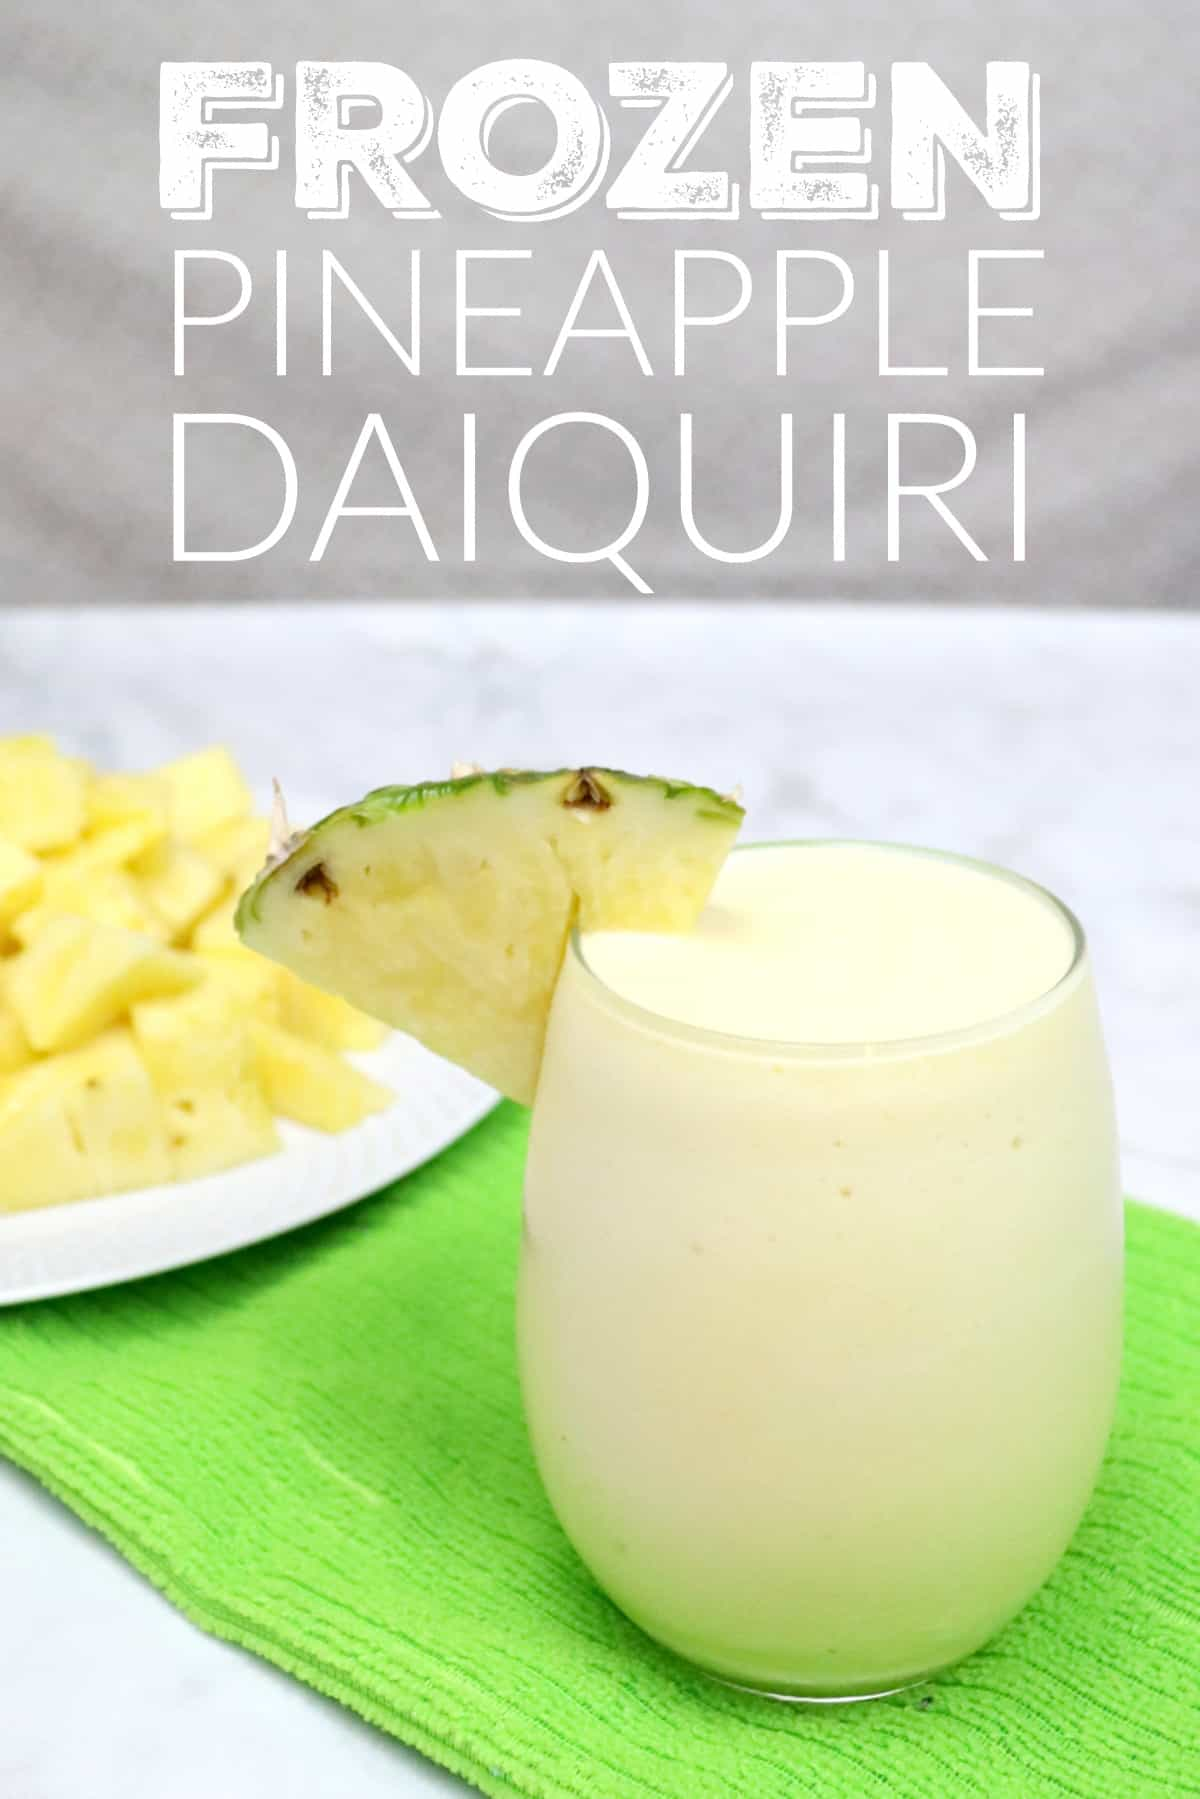 Frozen pineapple daiquiri recipe